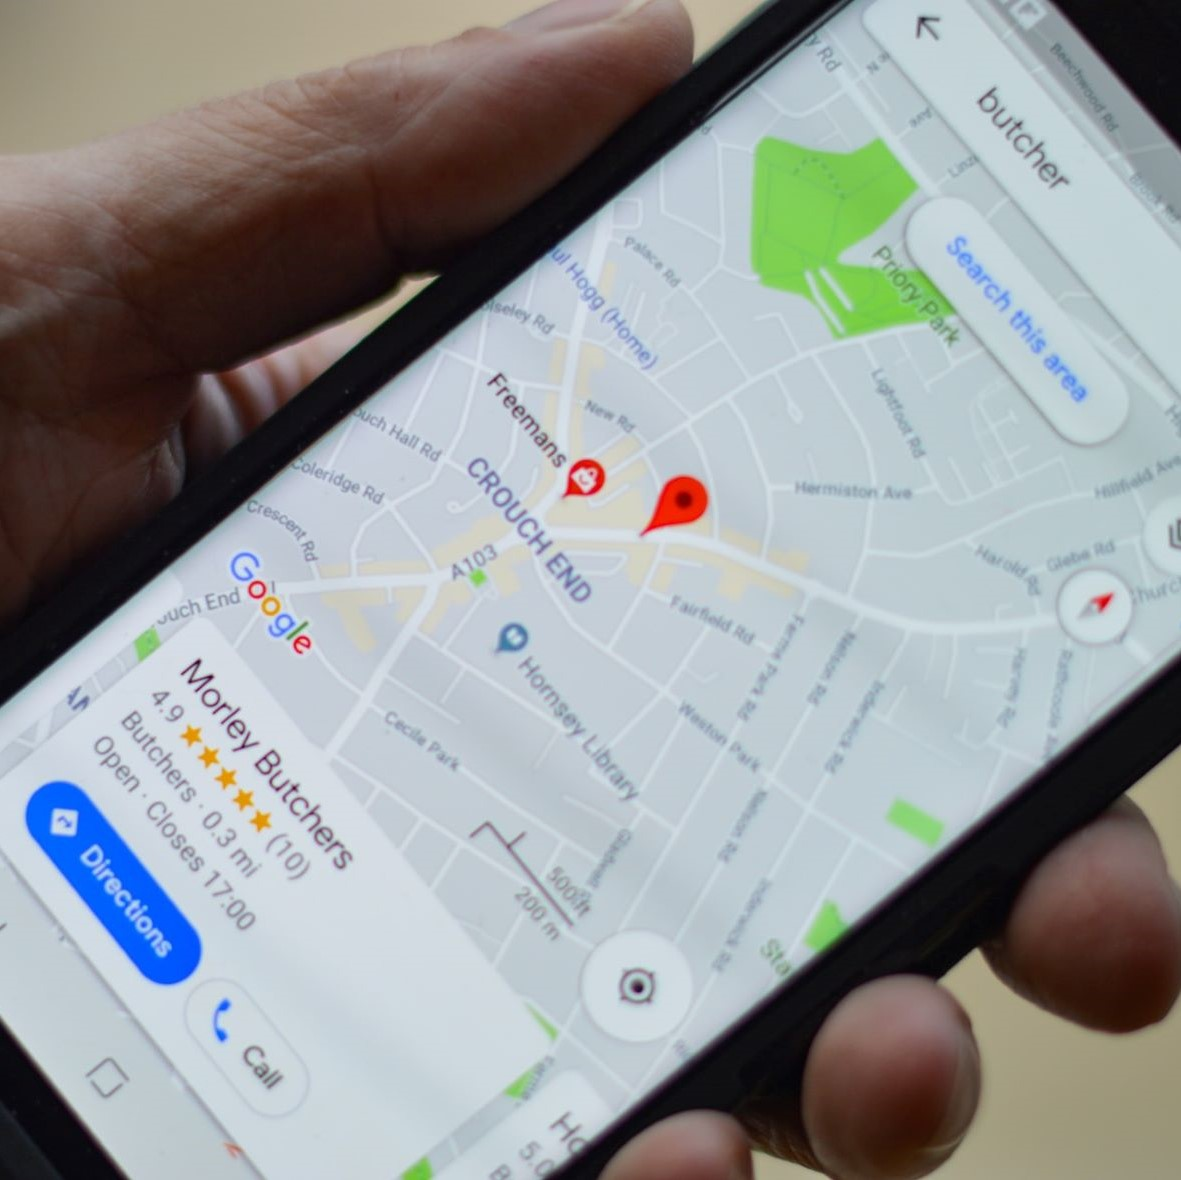 Google maps app on an Android device with the option of users to select the directions button.